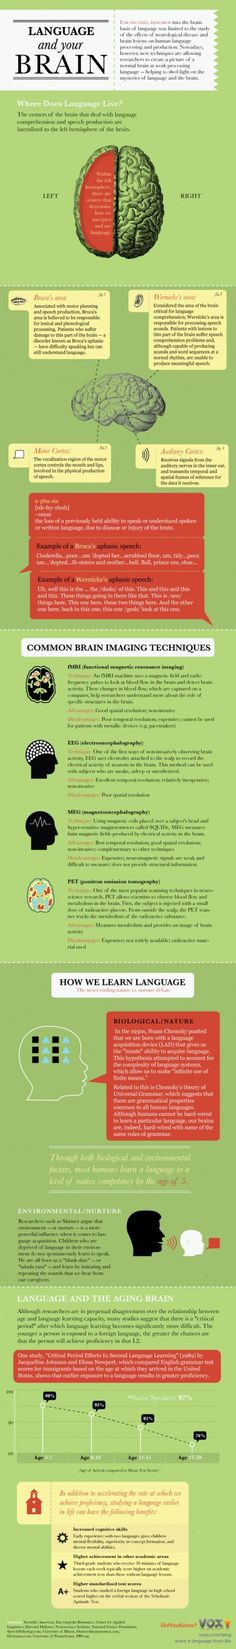 Richard Yates I have a brain injury mines Anoxic brain injury ;Infographic: Language and Your Brain - explains aphasia that can occur from a stroke or other brain injury Speech Language Therapy, Speech Language Pathology, Speech And Language, Speech Therapy, Learning Tips, Mobile Learning, Aphasia, Dyslexia, Mental Training